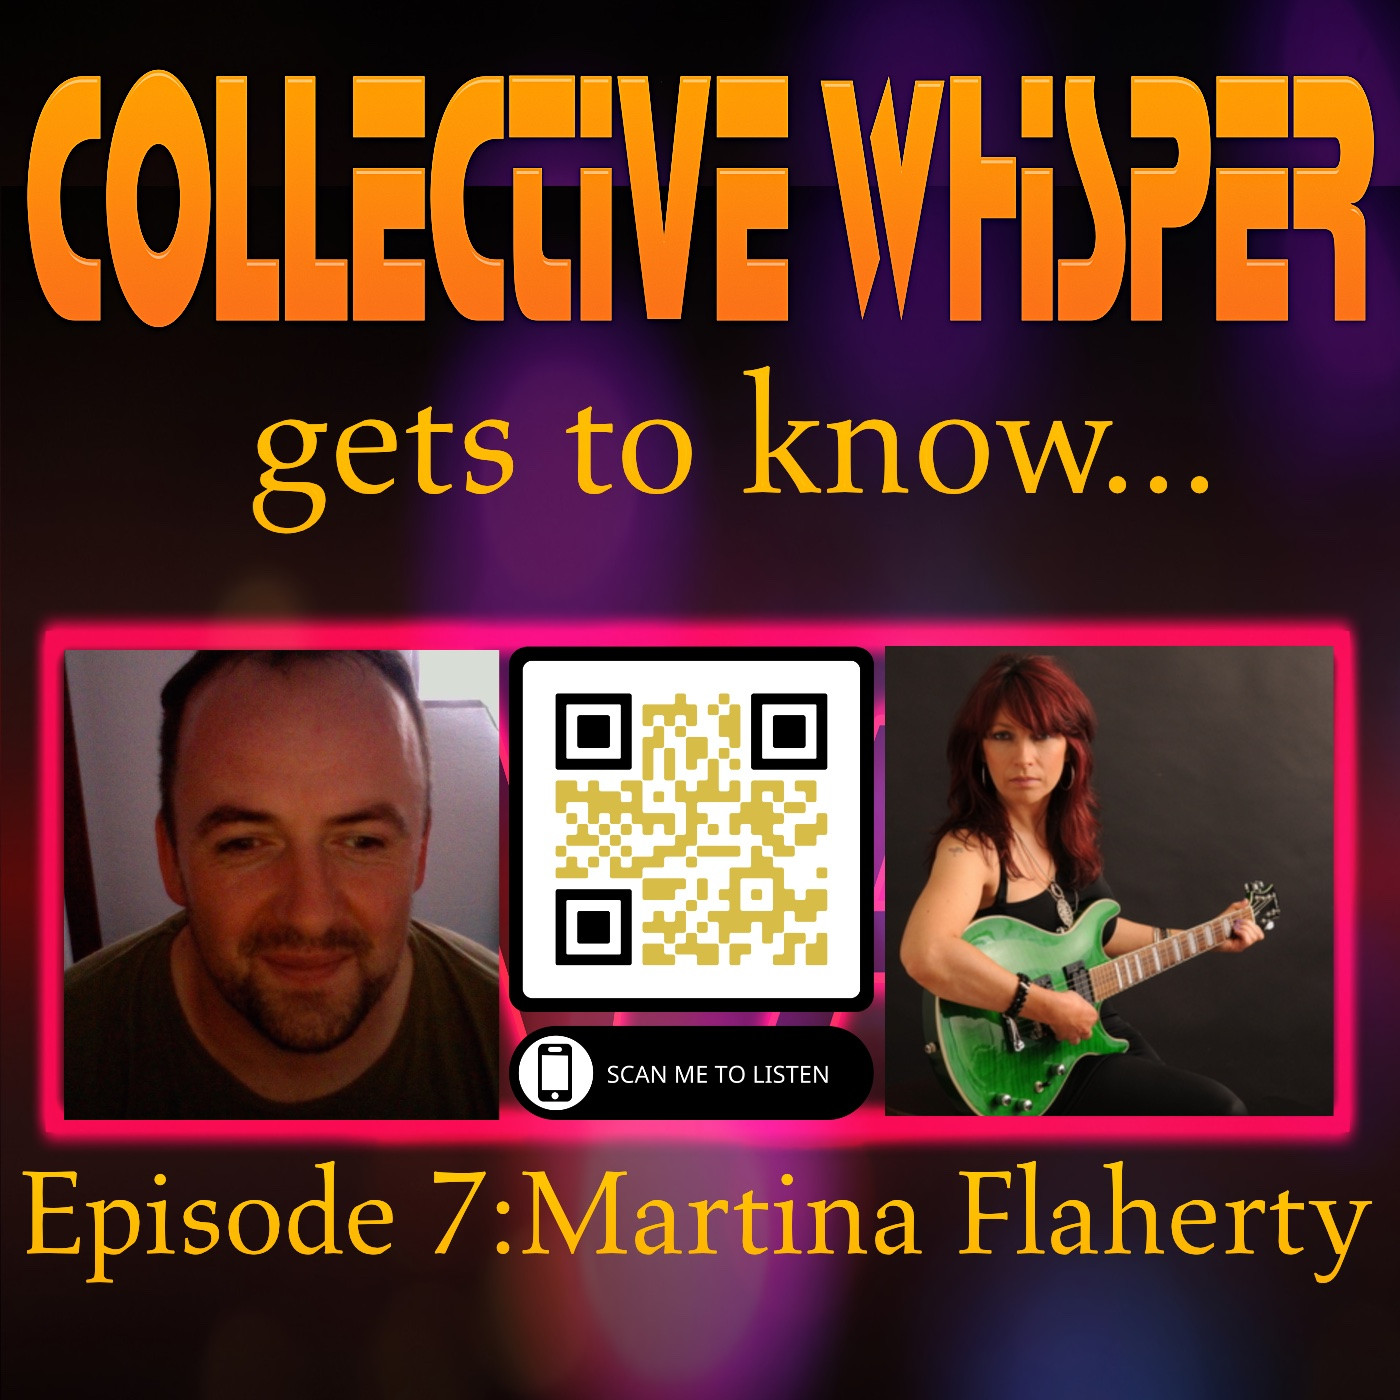 Collective Whisper gets to know.....Martina Flaherty